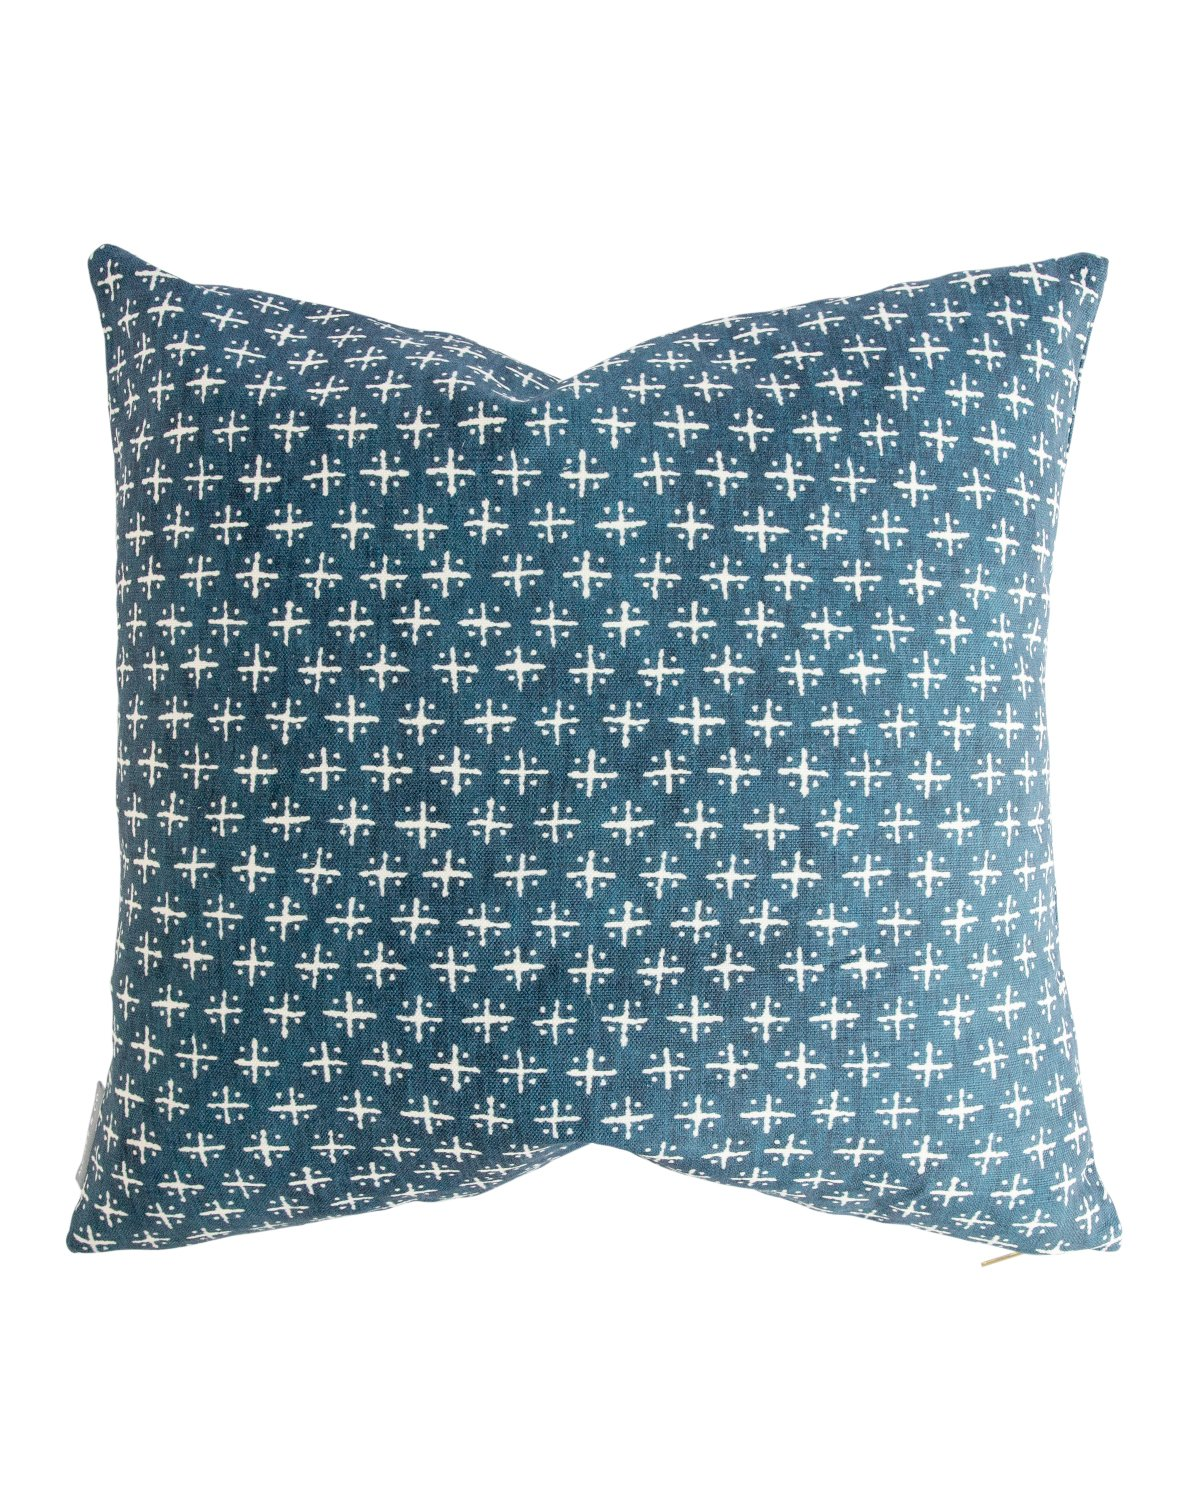 Newport_Cross_Pillow_1.jpg